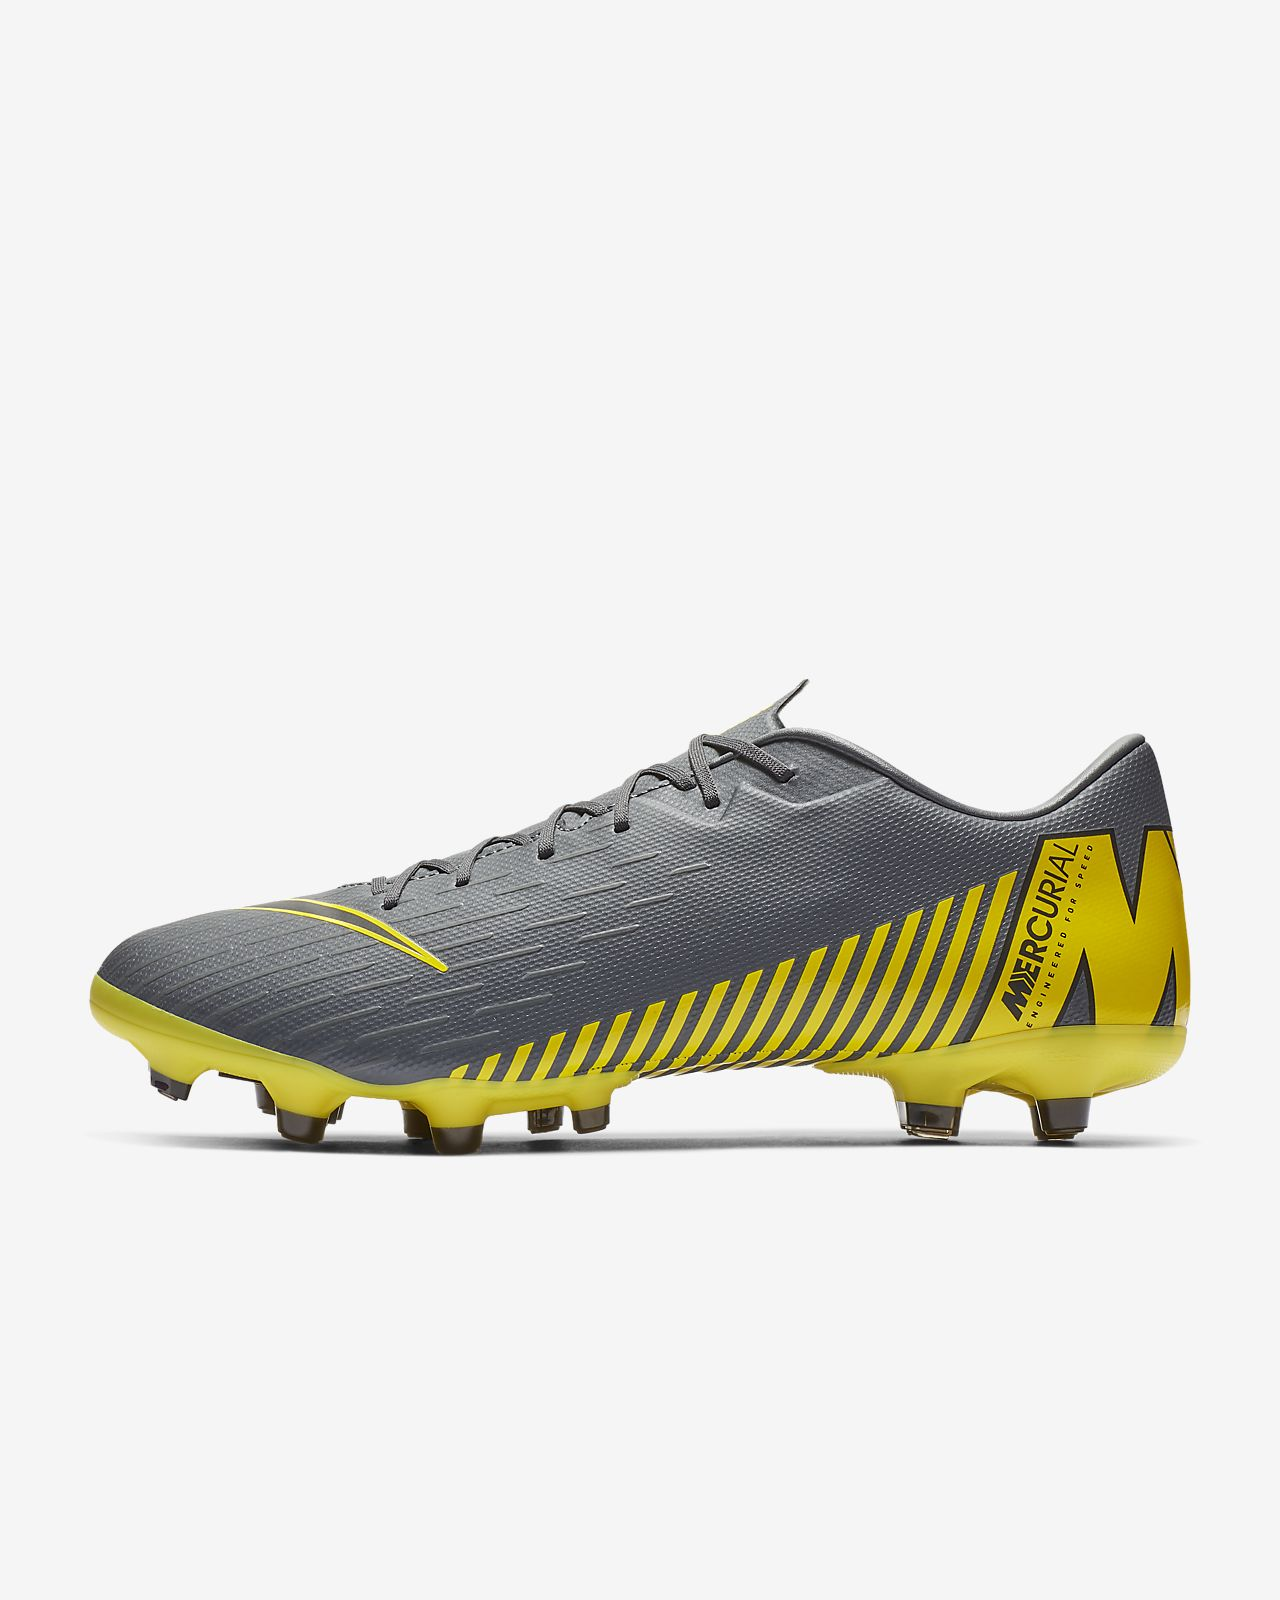 Nike Mercurial Vapor Orange And Yellow Color Code Nike Mercurial ... 31ca1abf66353